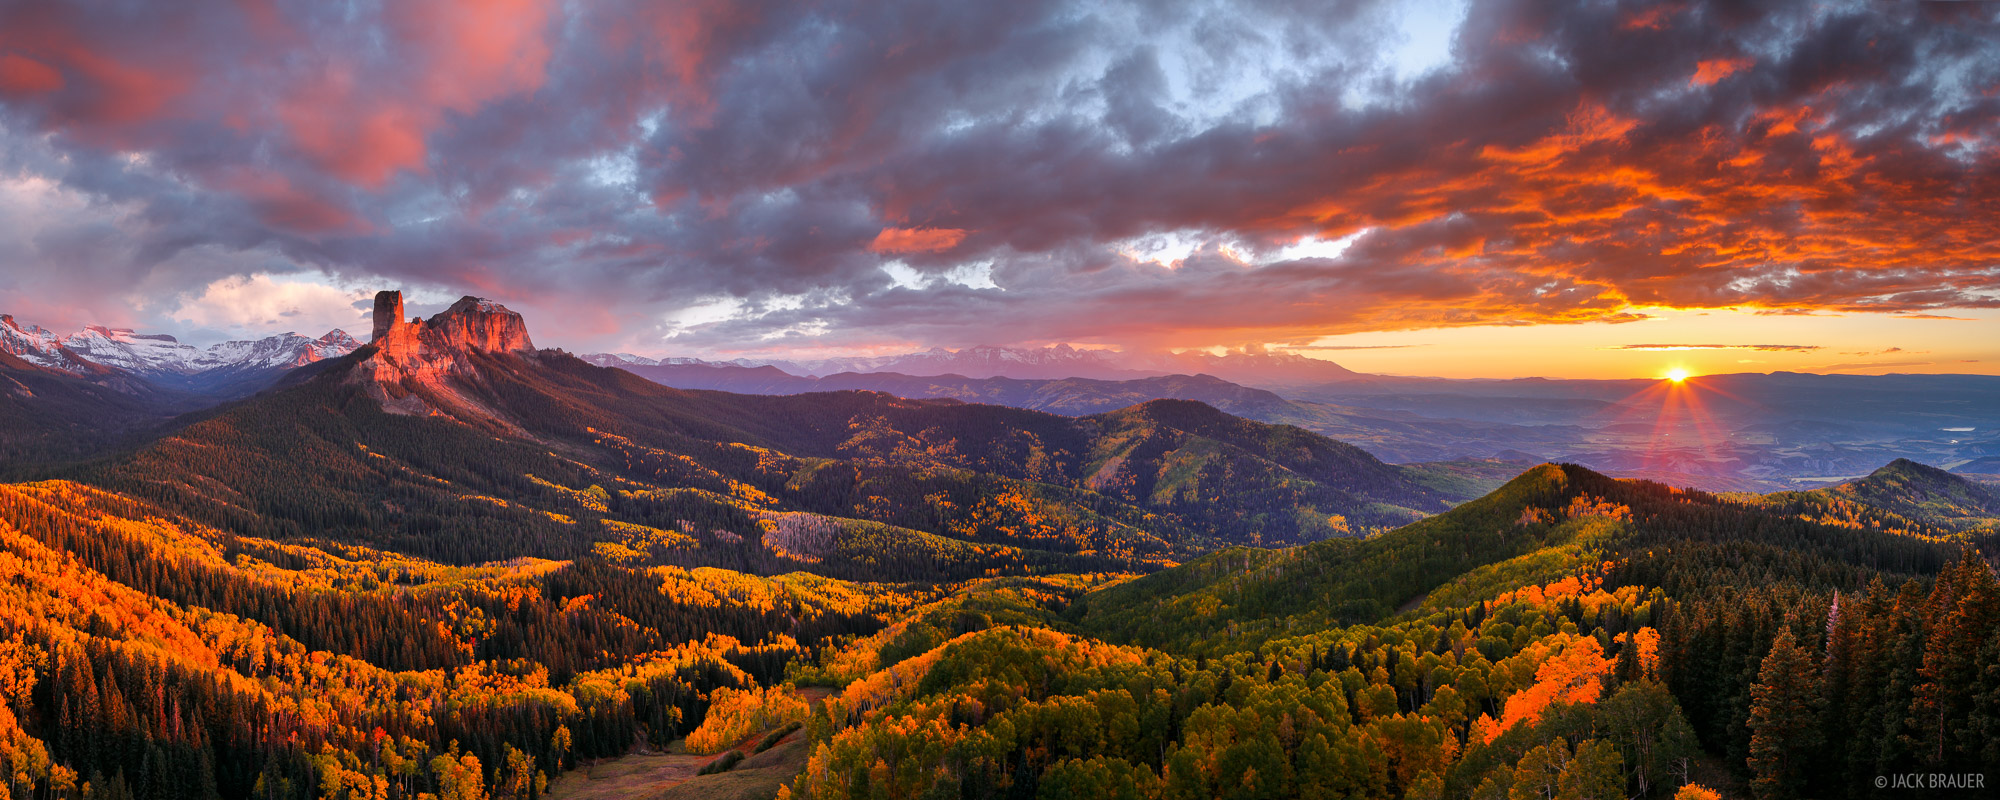 National Geographic Fall Wallpaper Mountain Photo Galleries Mountain Photography By Jack Brauer